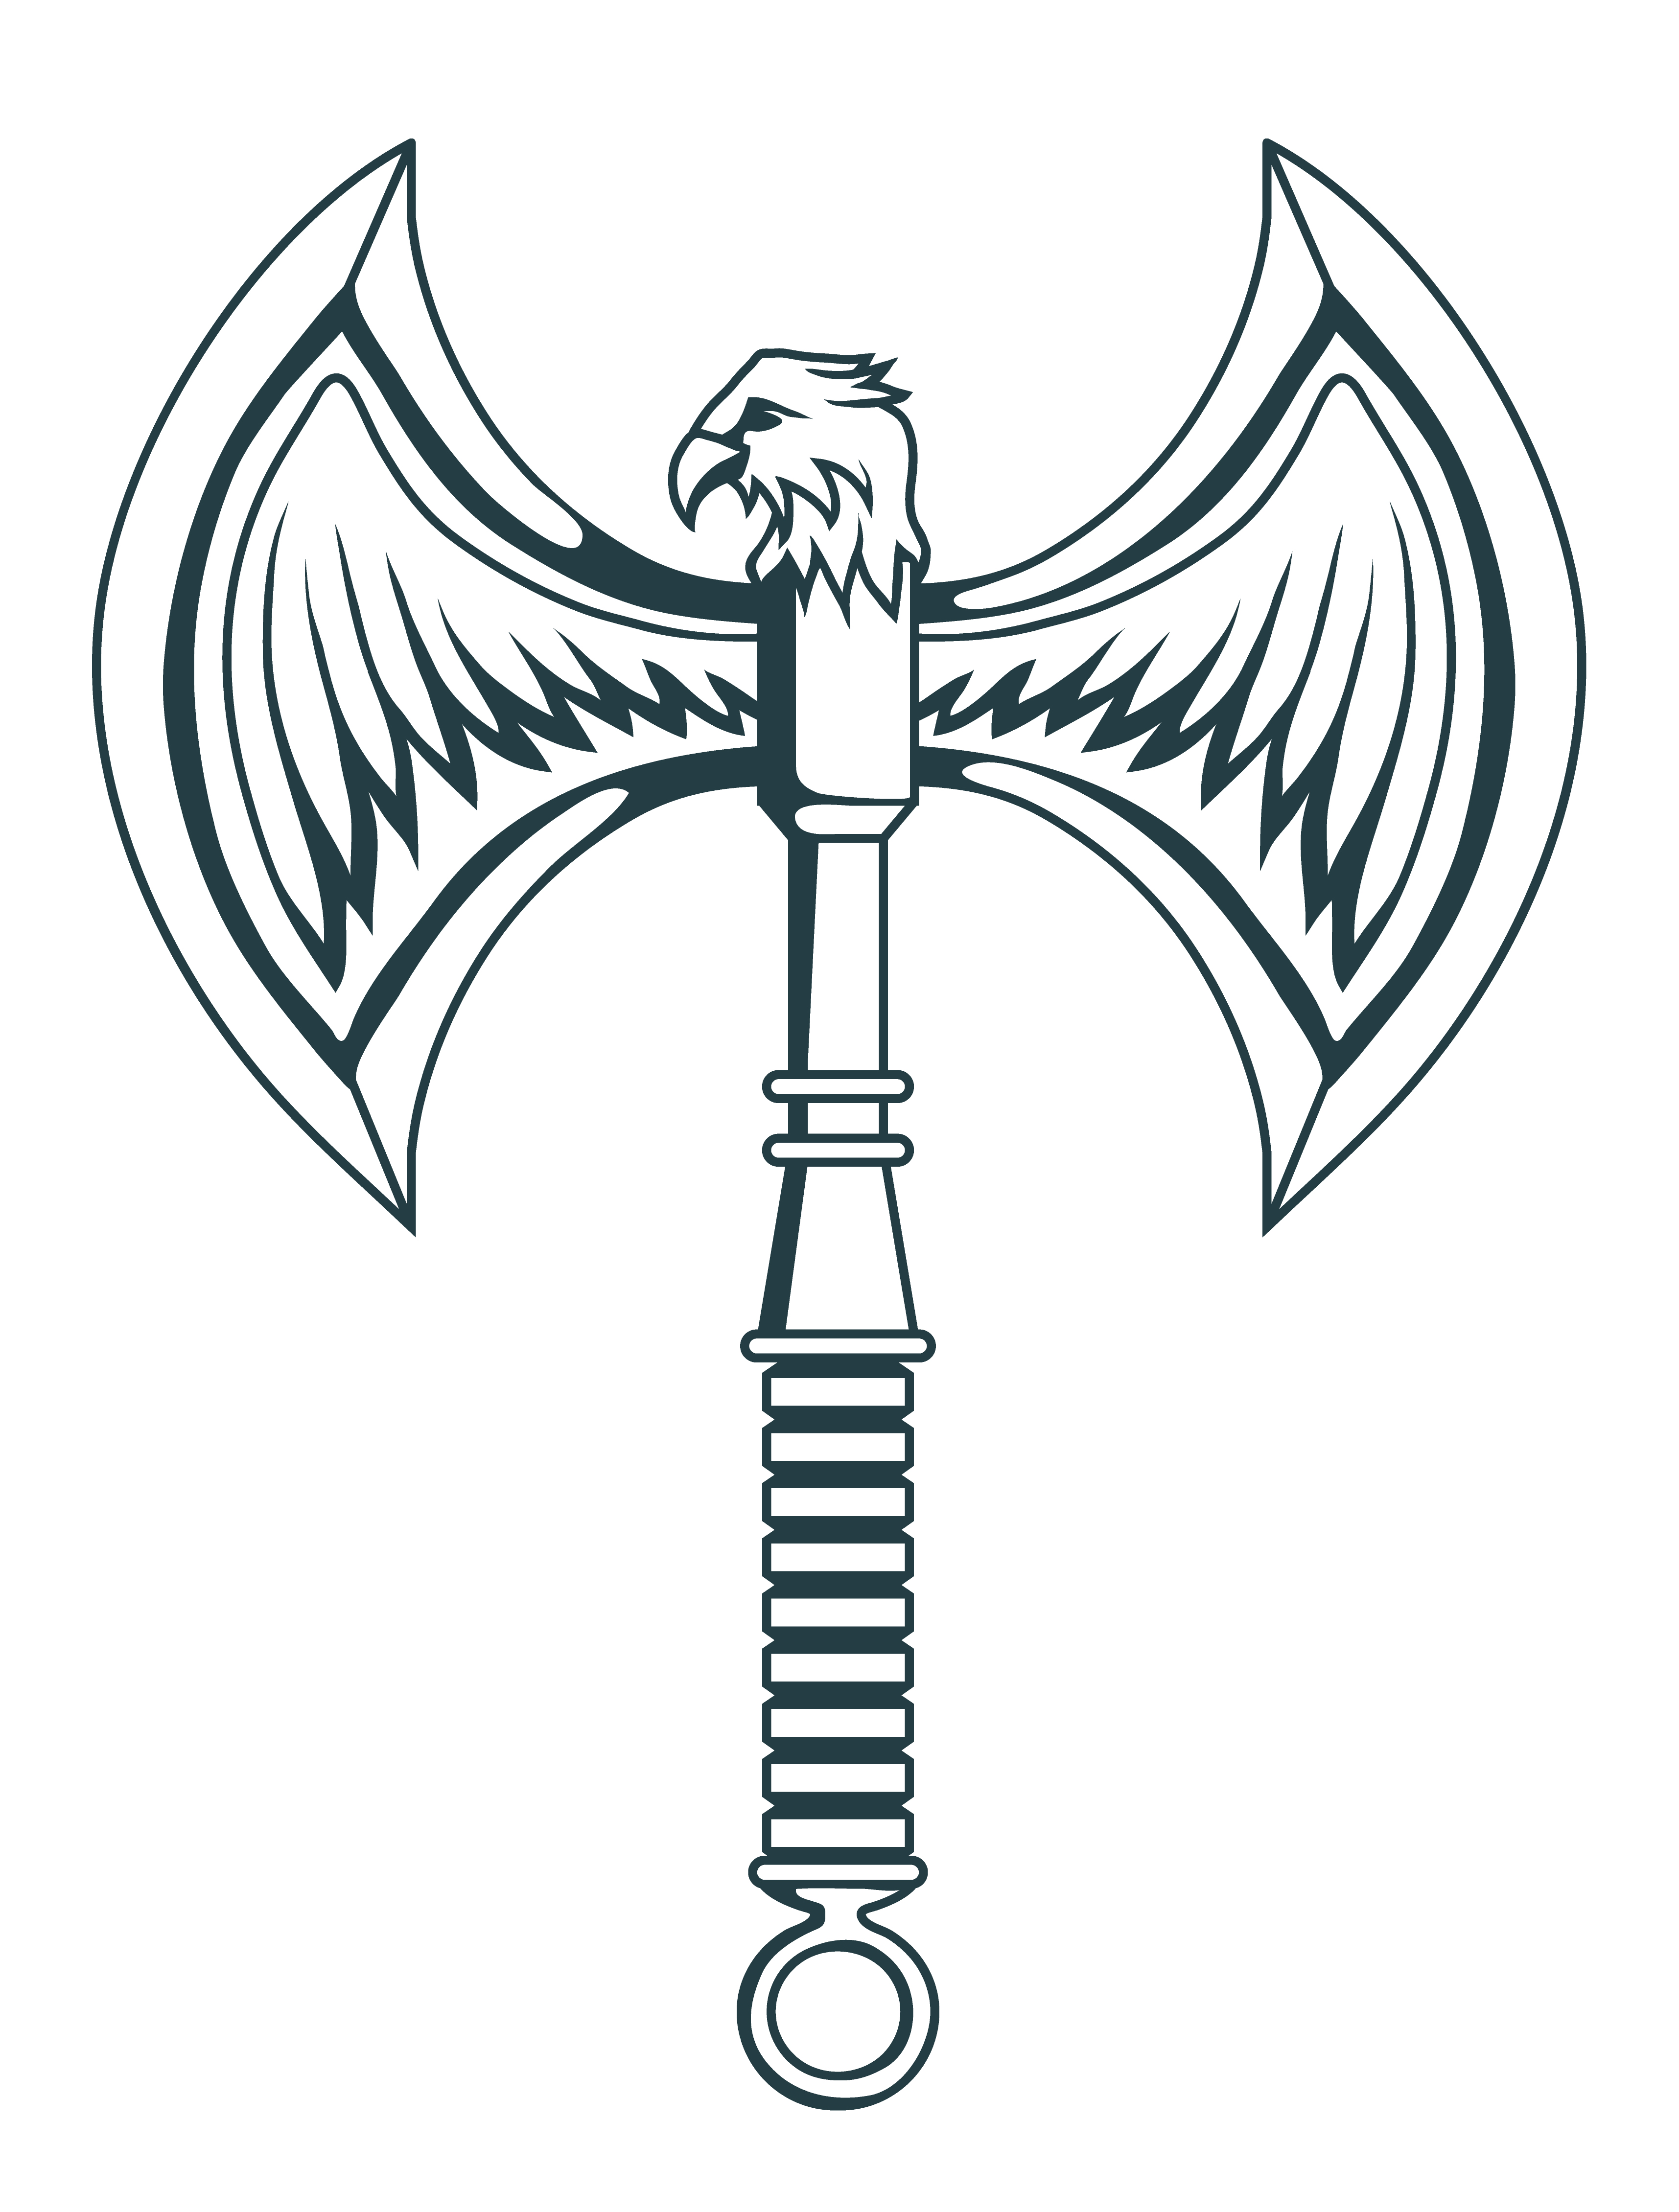 Labrys Symbol, Its Meaning, History and Origins